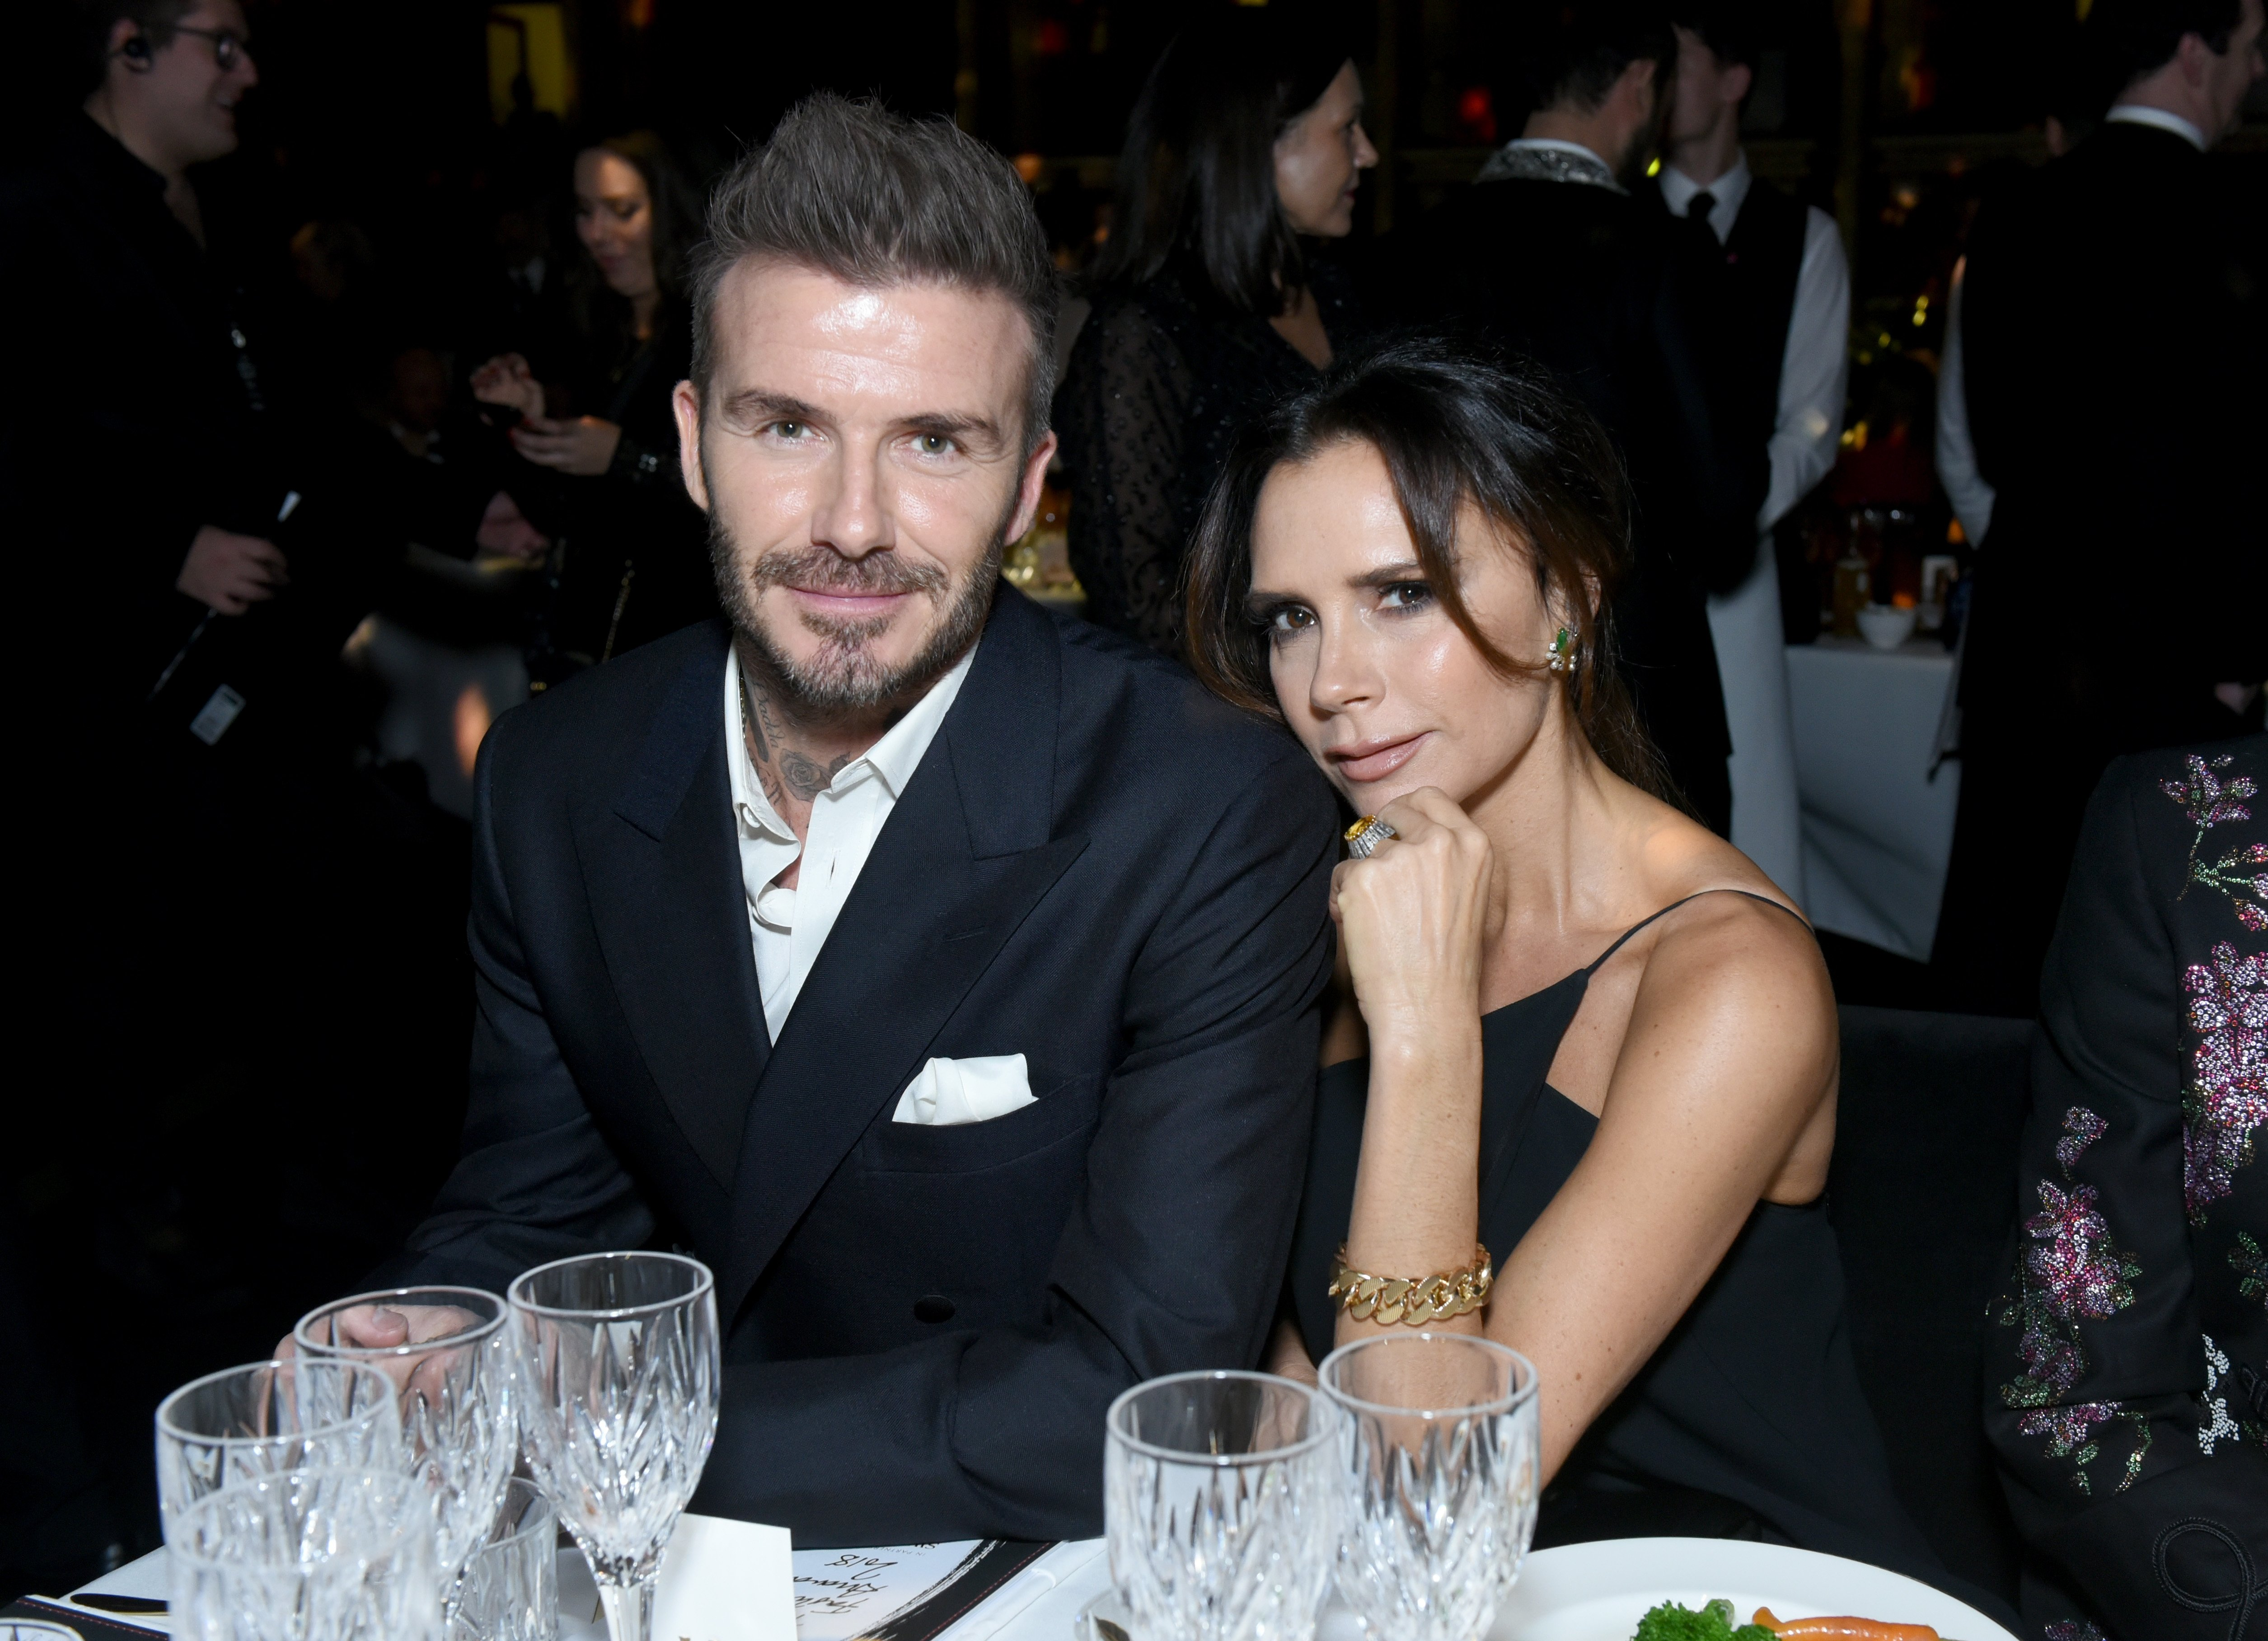 David Beckham and Victoria Beckham attend The Fashion Awards on December 10, 2018, in London, England. | Source: Getty Images